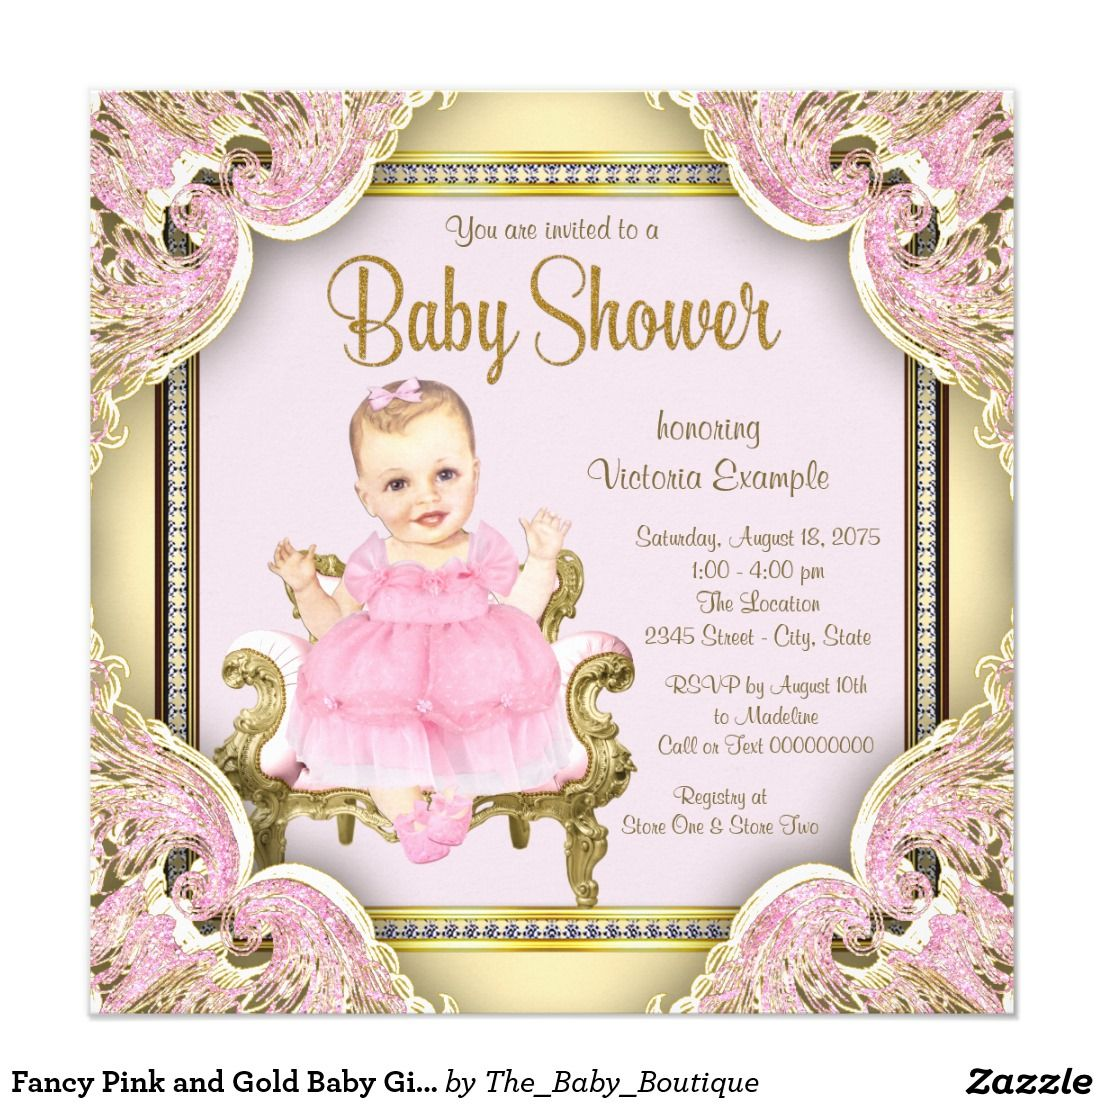 Fancy Pink and Gold Baby Girl Shower Invitations | Girl Baby Shower ...